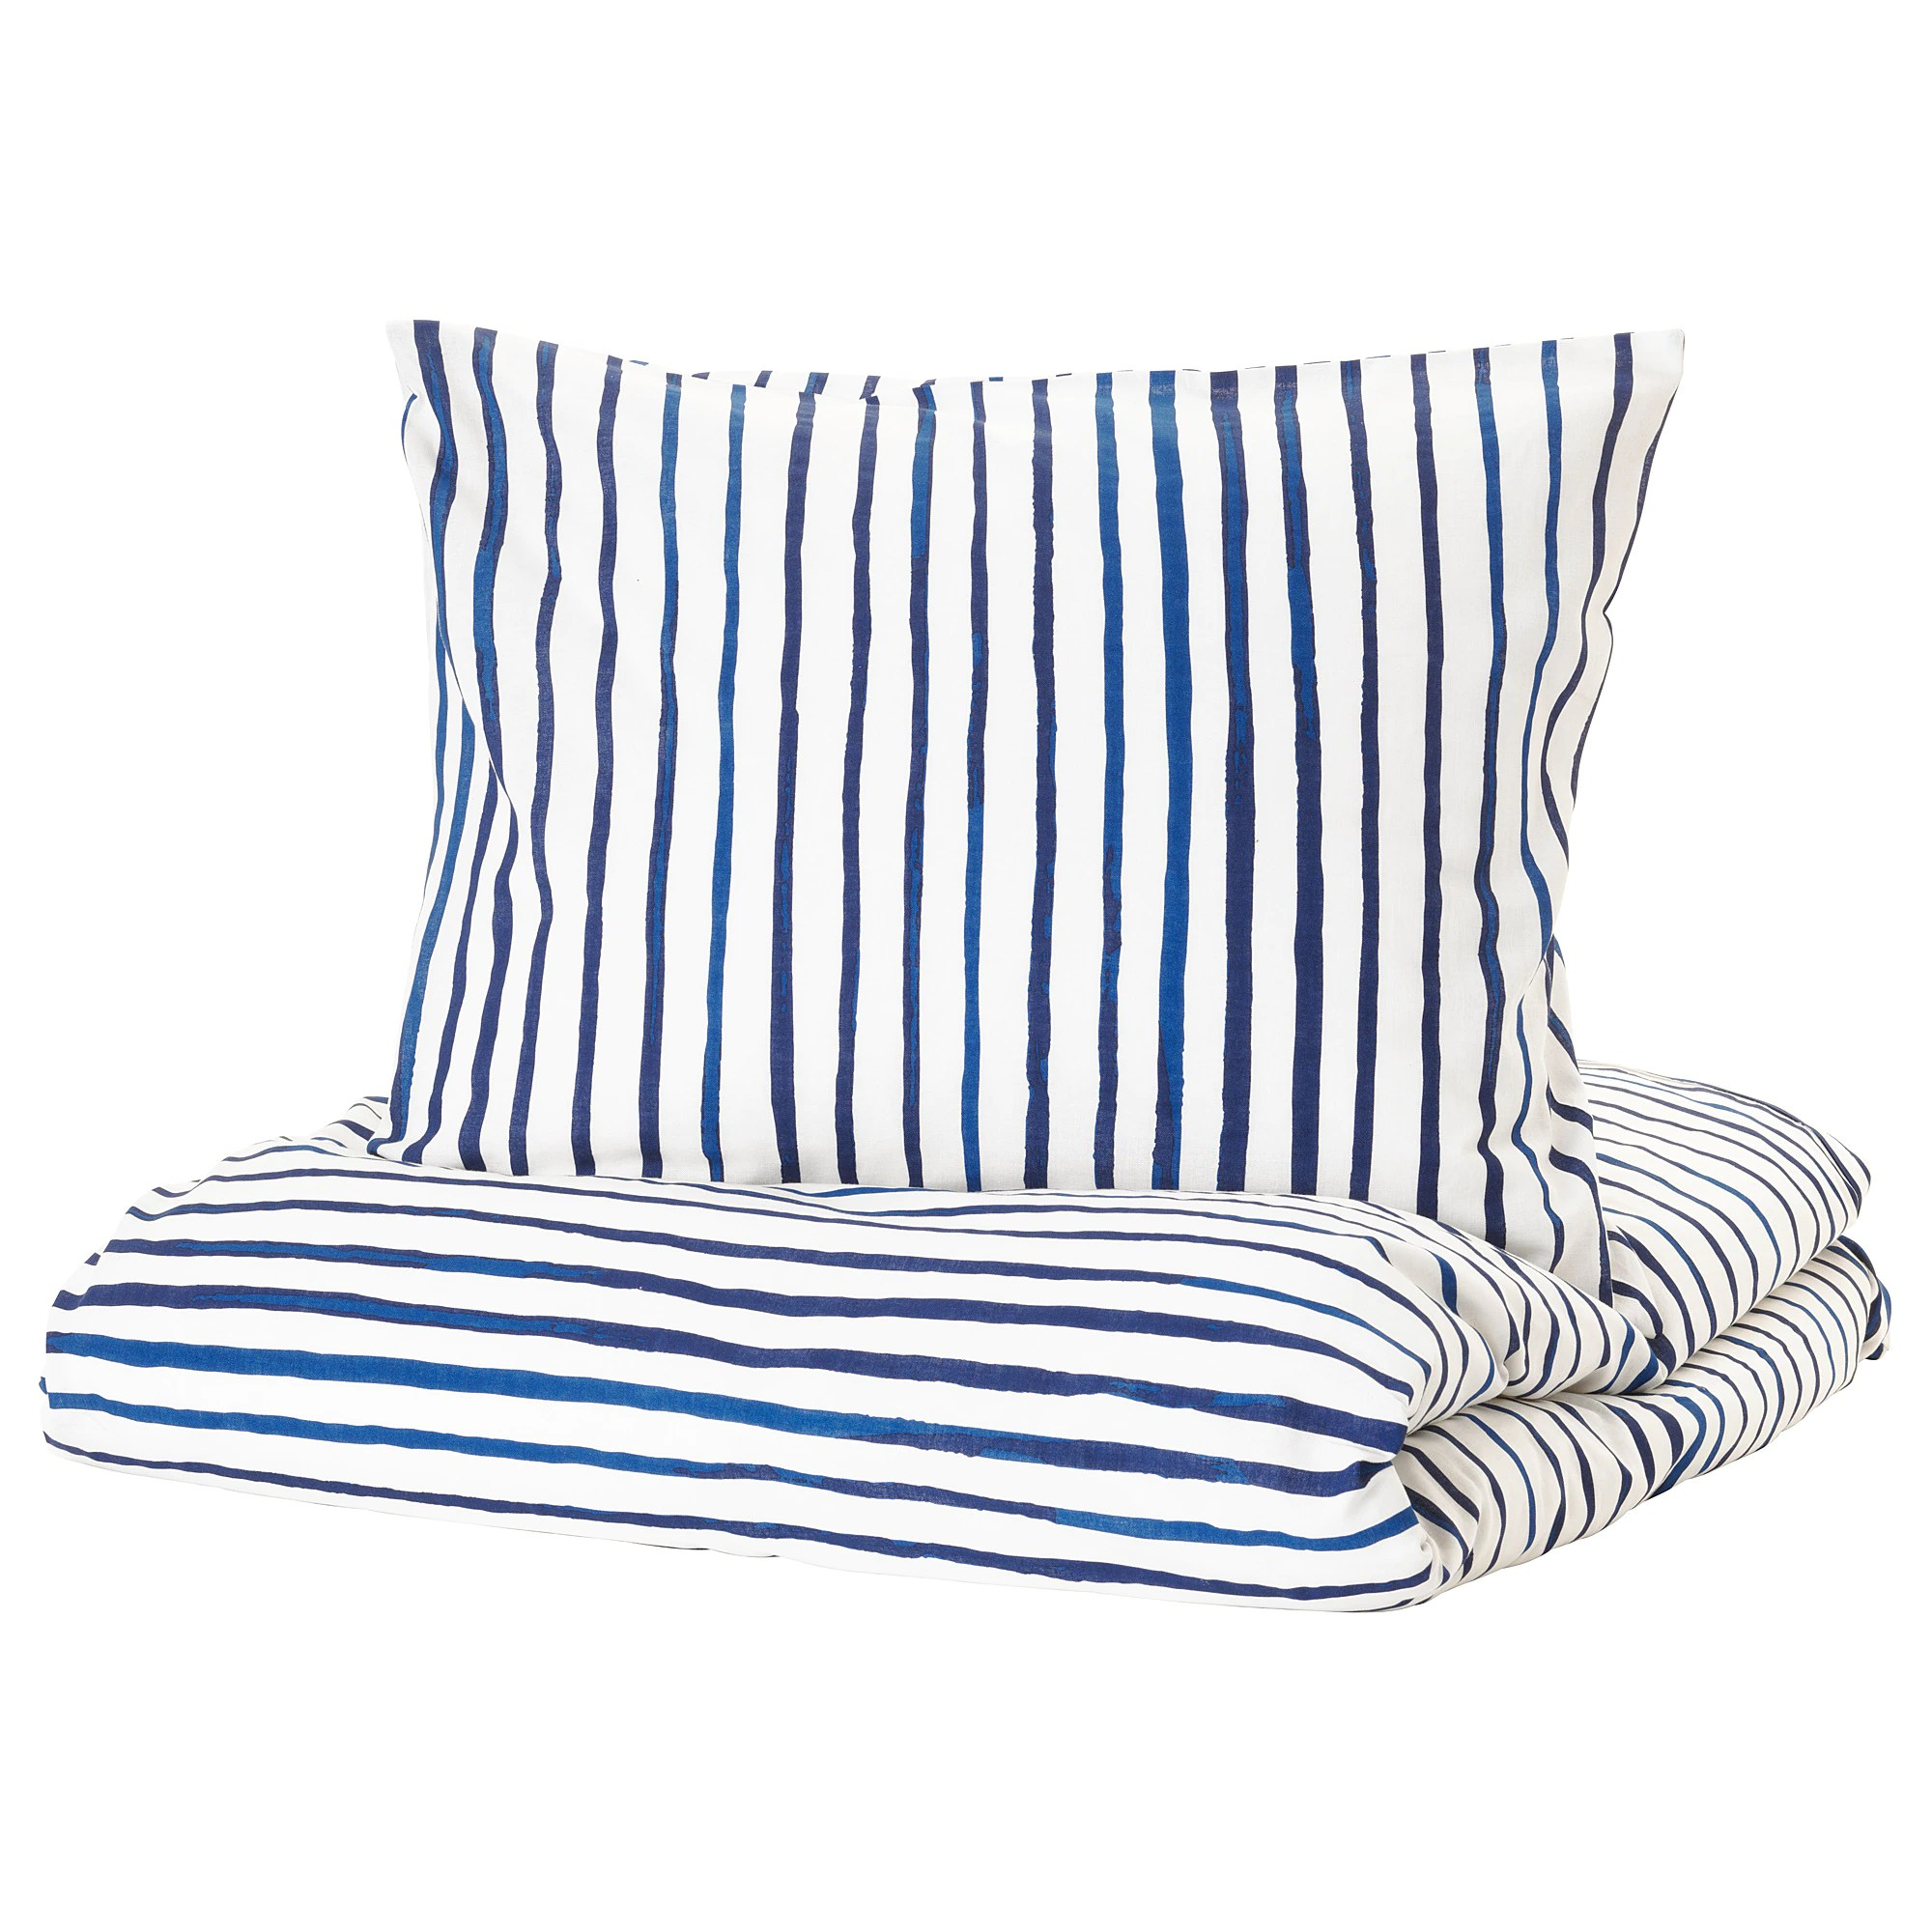 Blue And White Striped Chair Quilt Cover And Pillowcase SÅnglÄrka Striped Blue White